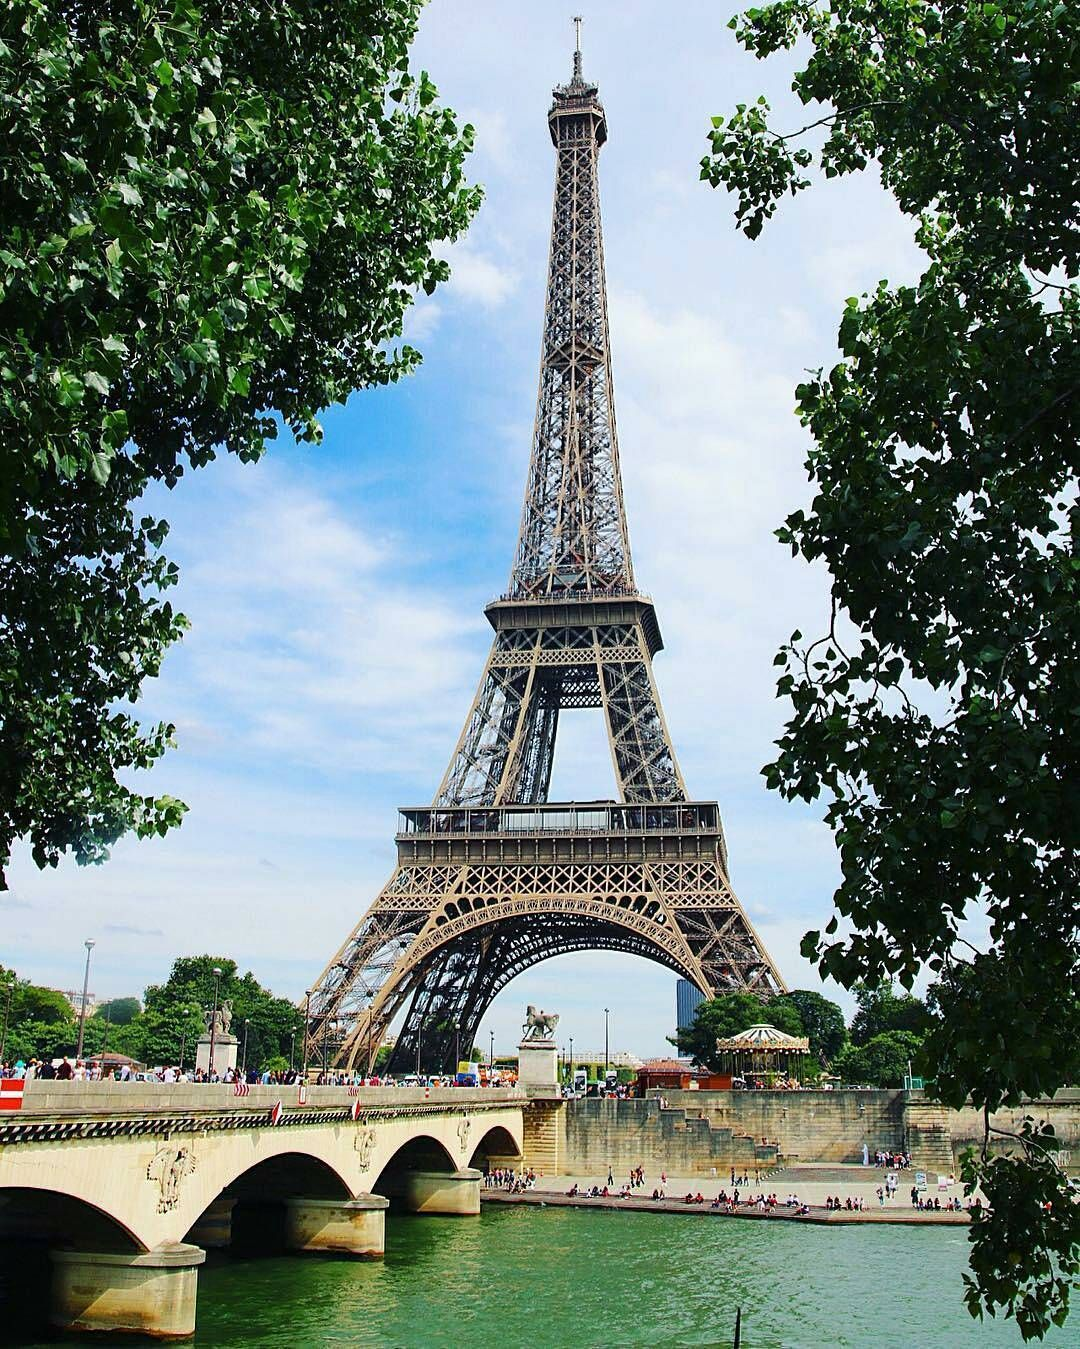 Eiffel Tower                                                                                                                                                                                 More